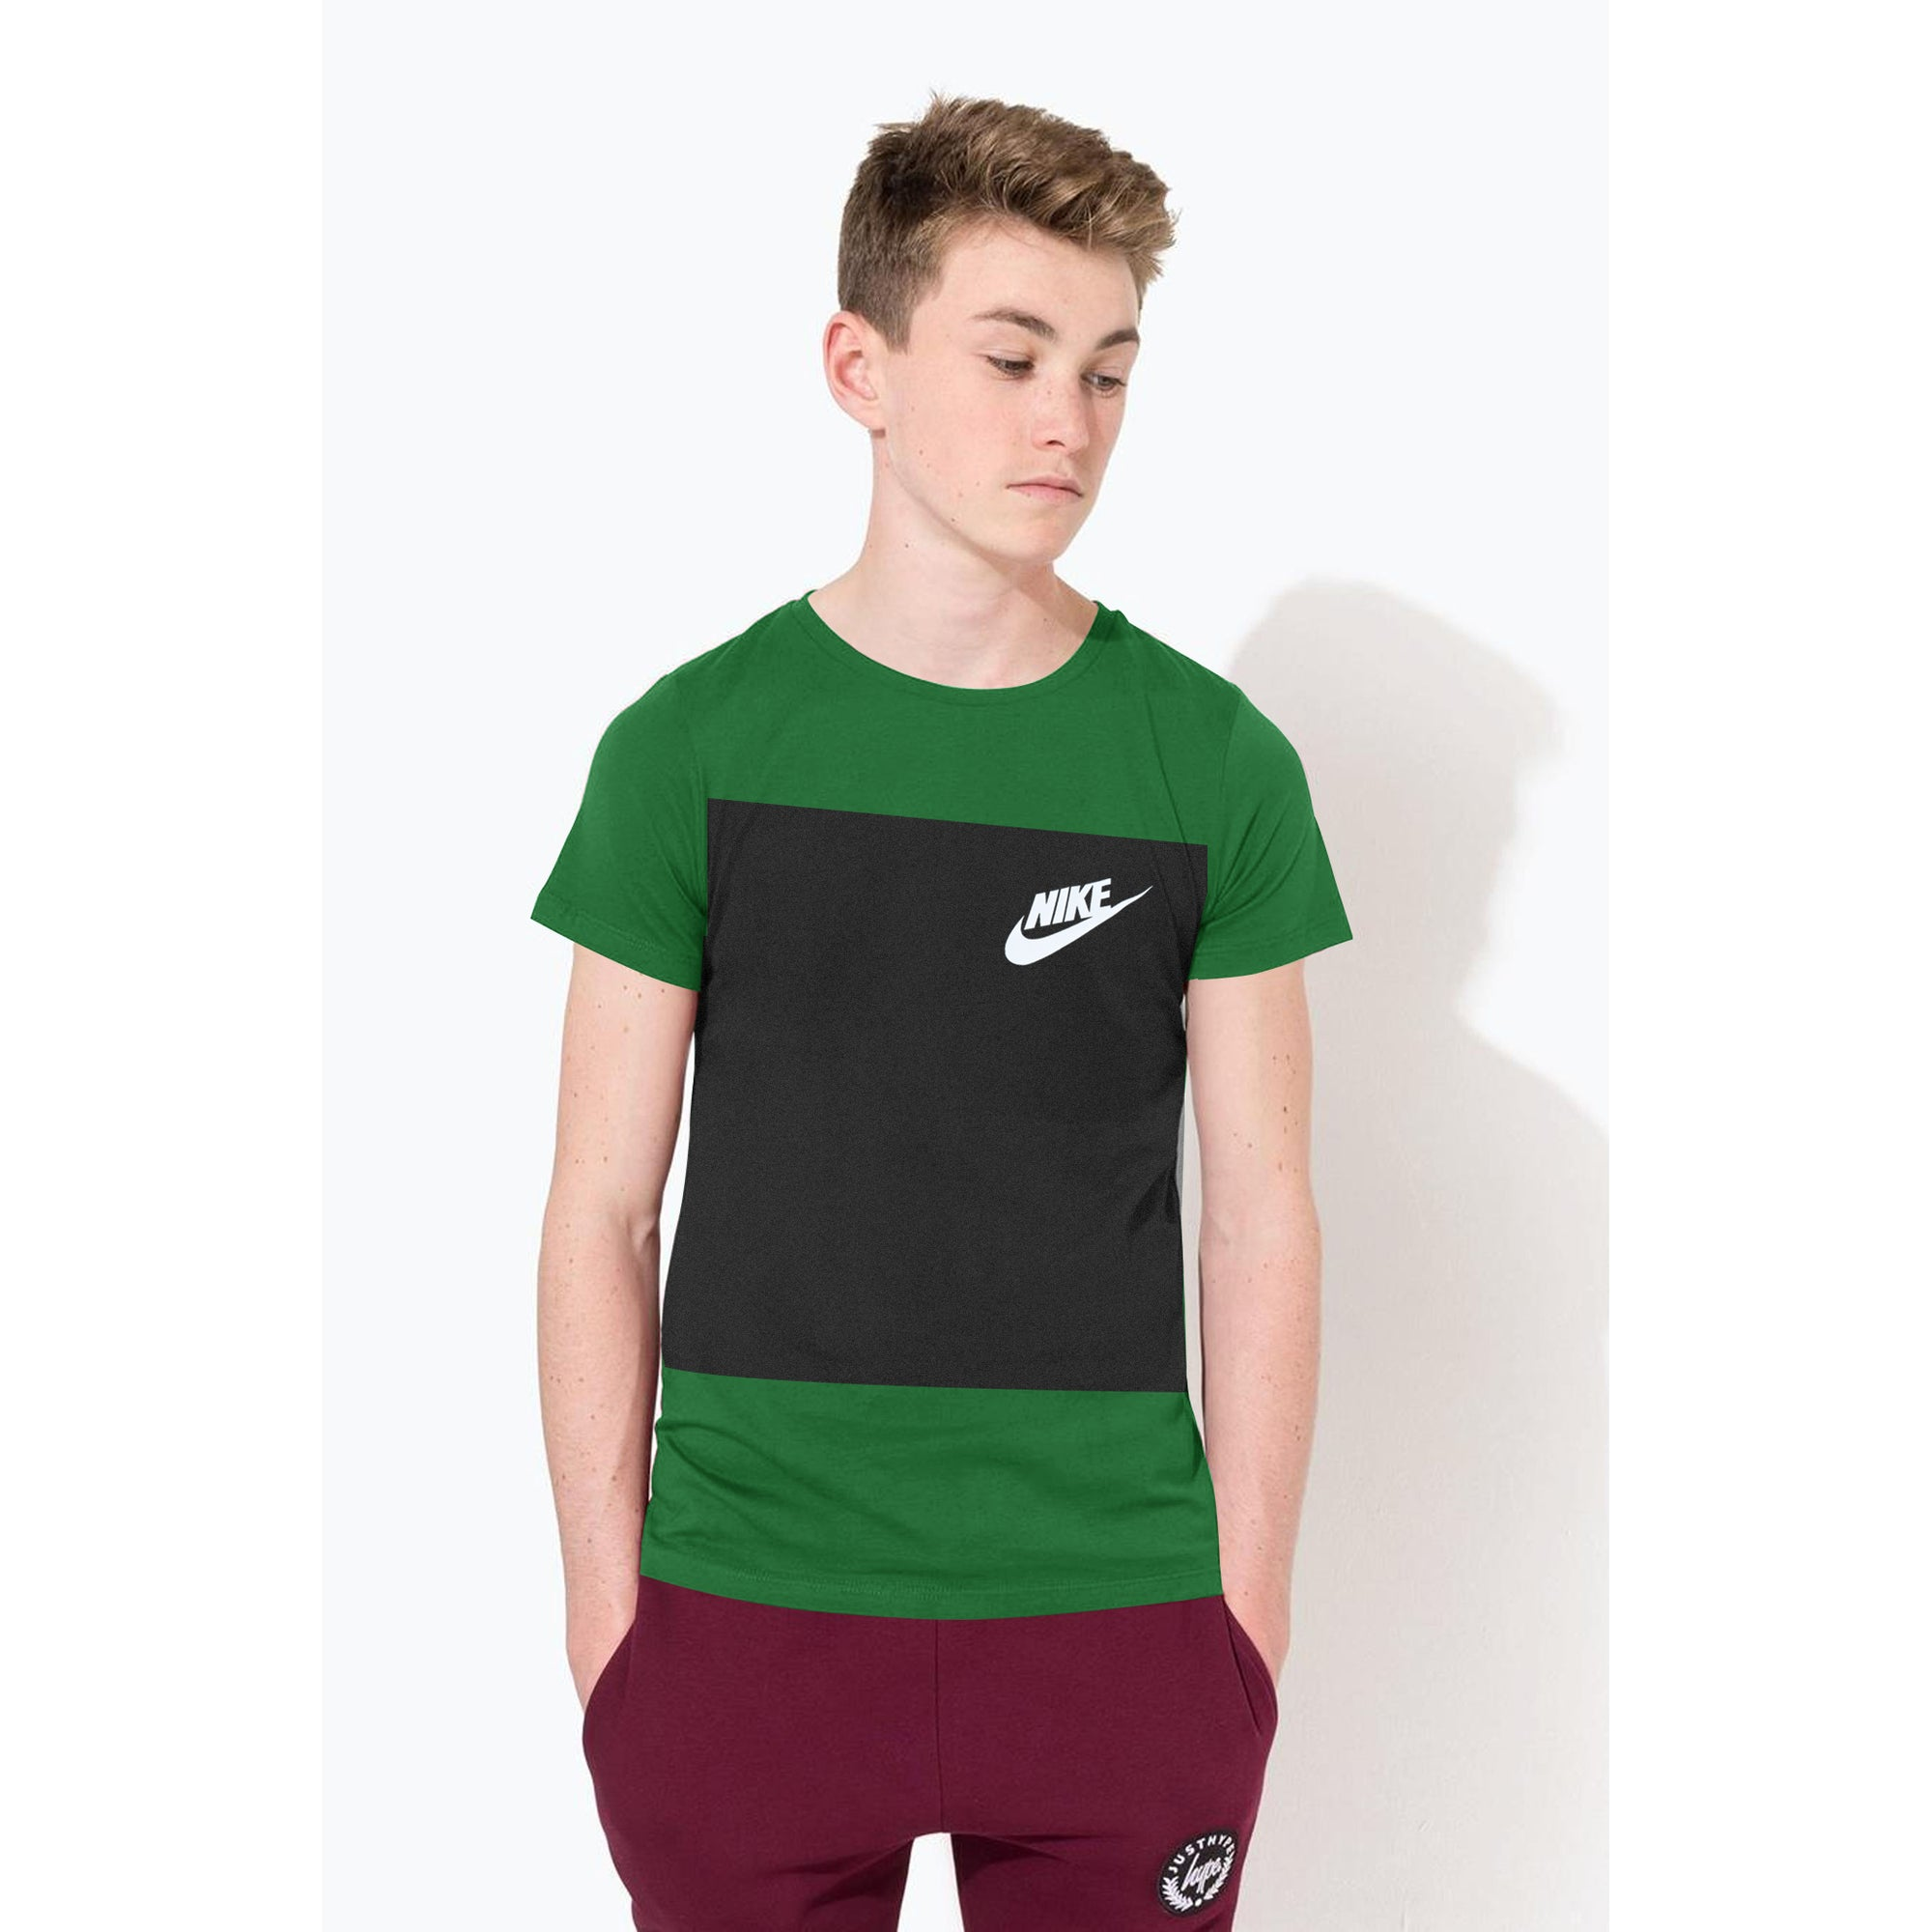 NK Crew Neck Single Jersey Short Sleeve Tee Shirt For Boys-Dark Green with Charcoal Melange Panel-SP1963